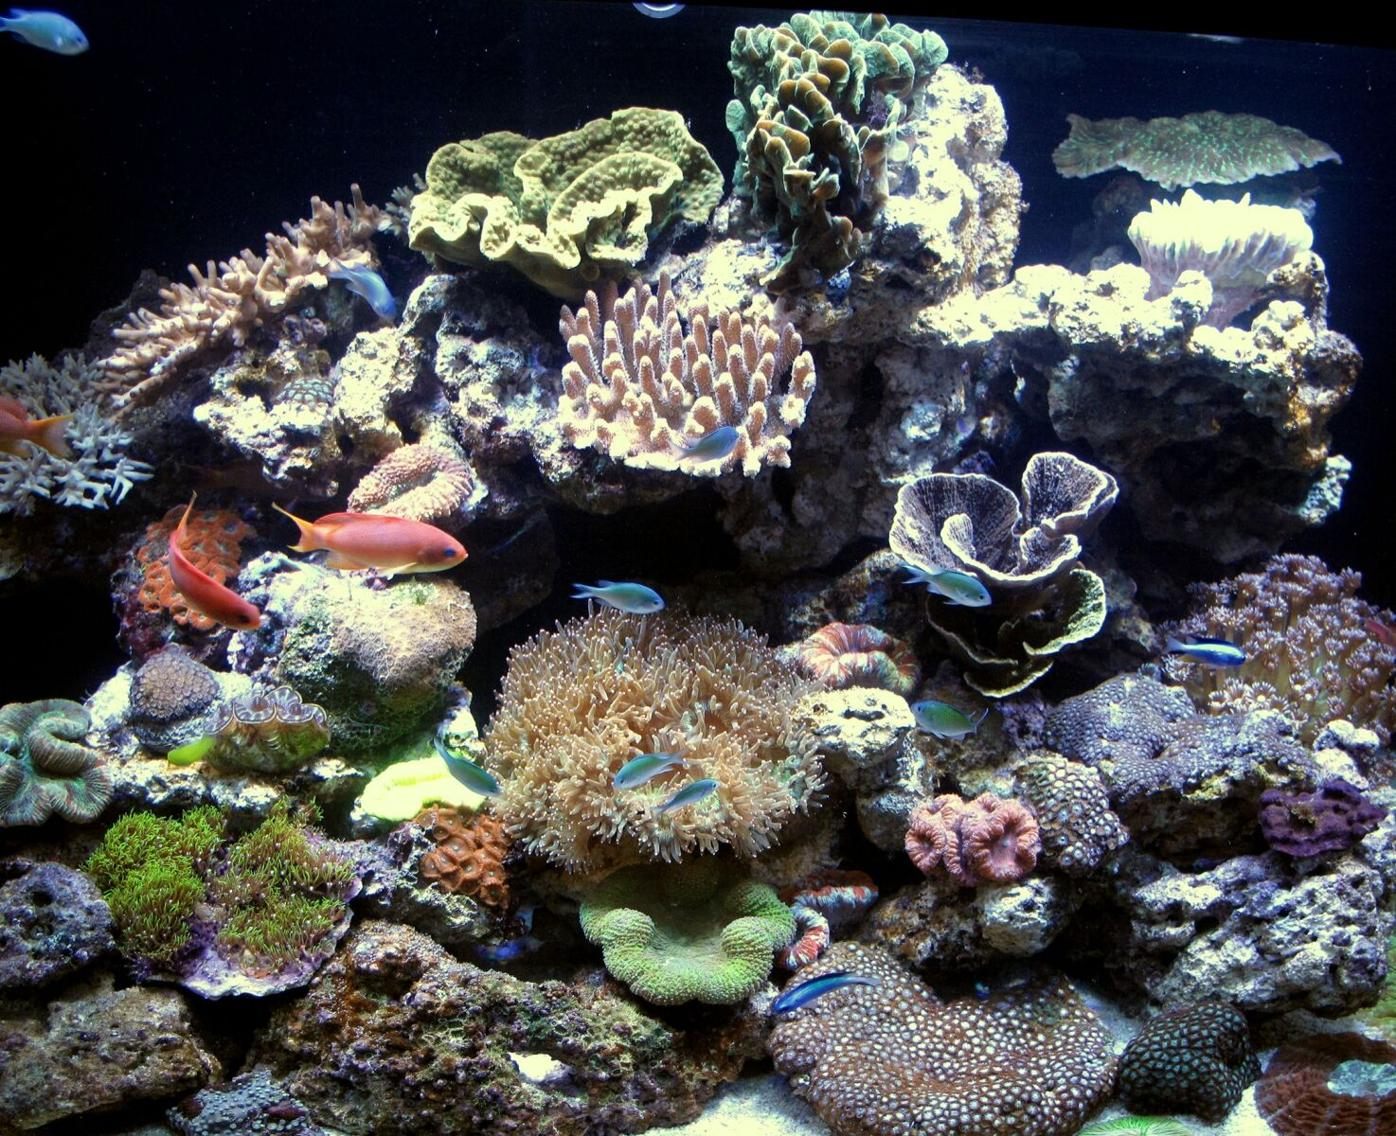 Technological Advances in Aquatics Boost Consumer Interest in Hobby